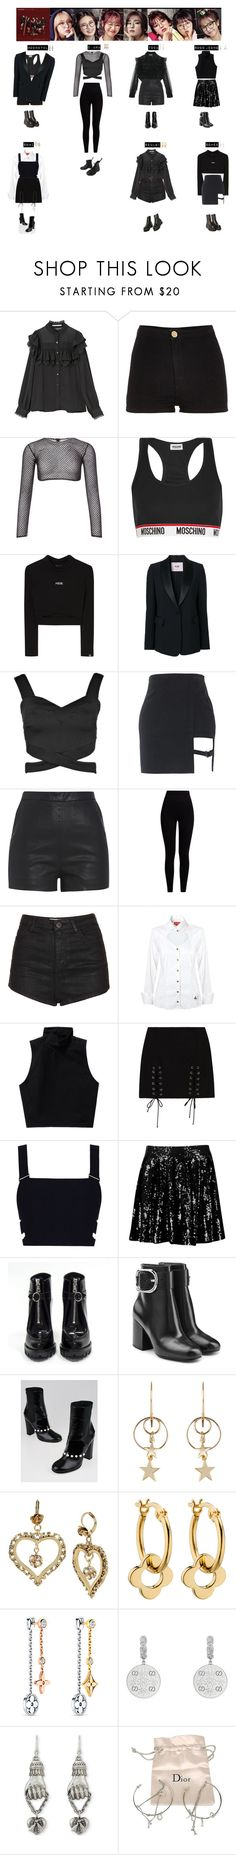 """GIRL NEXT DOOR - DEEP BLUE EYES❤️"" by vvvan99 ❤ liked on Polyvore featuring River Island, PA5H, Moschino, MSGM, Boohoo, Pepper & Mayne, Topshop, Vivienne Westwood Red Label, Talula and Zimmermann"